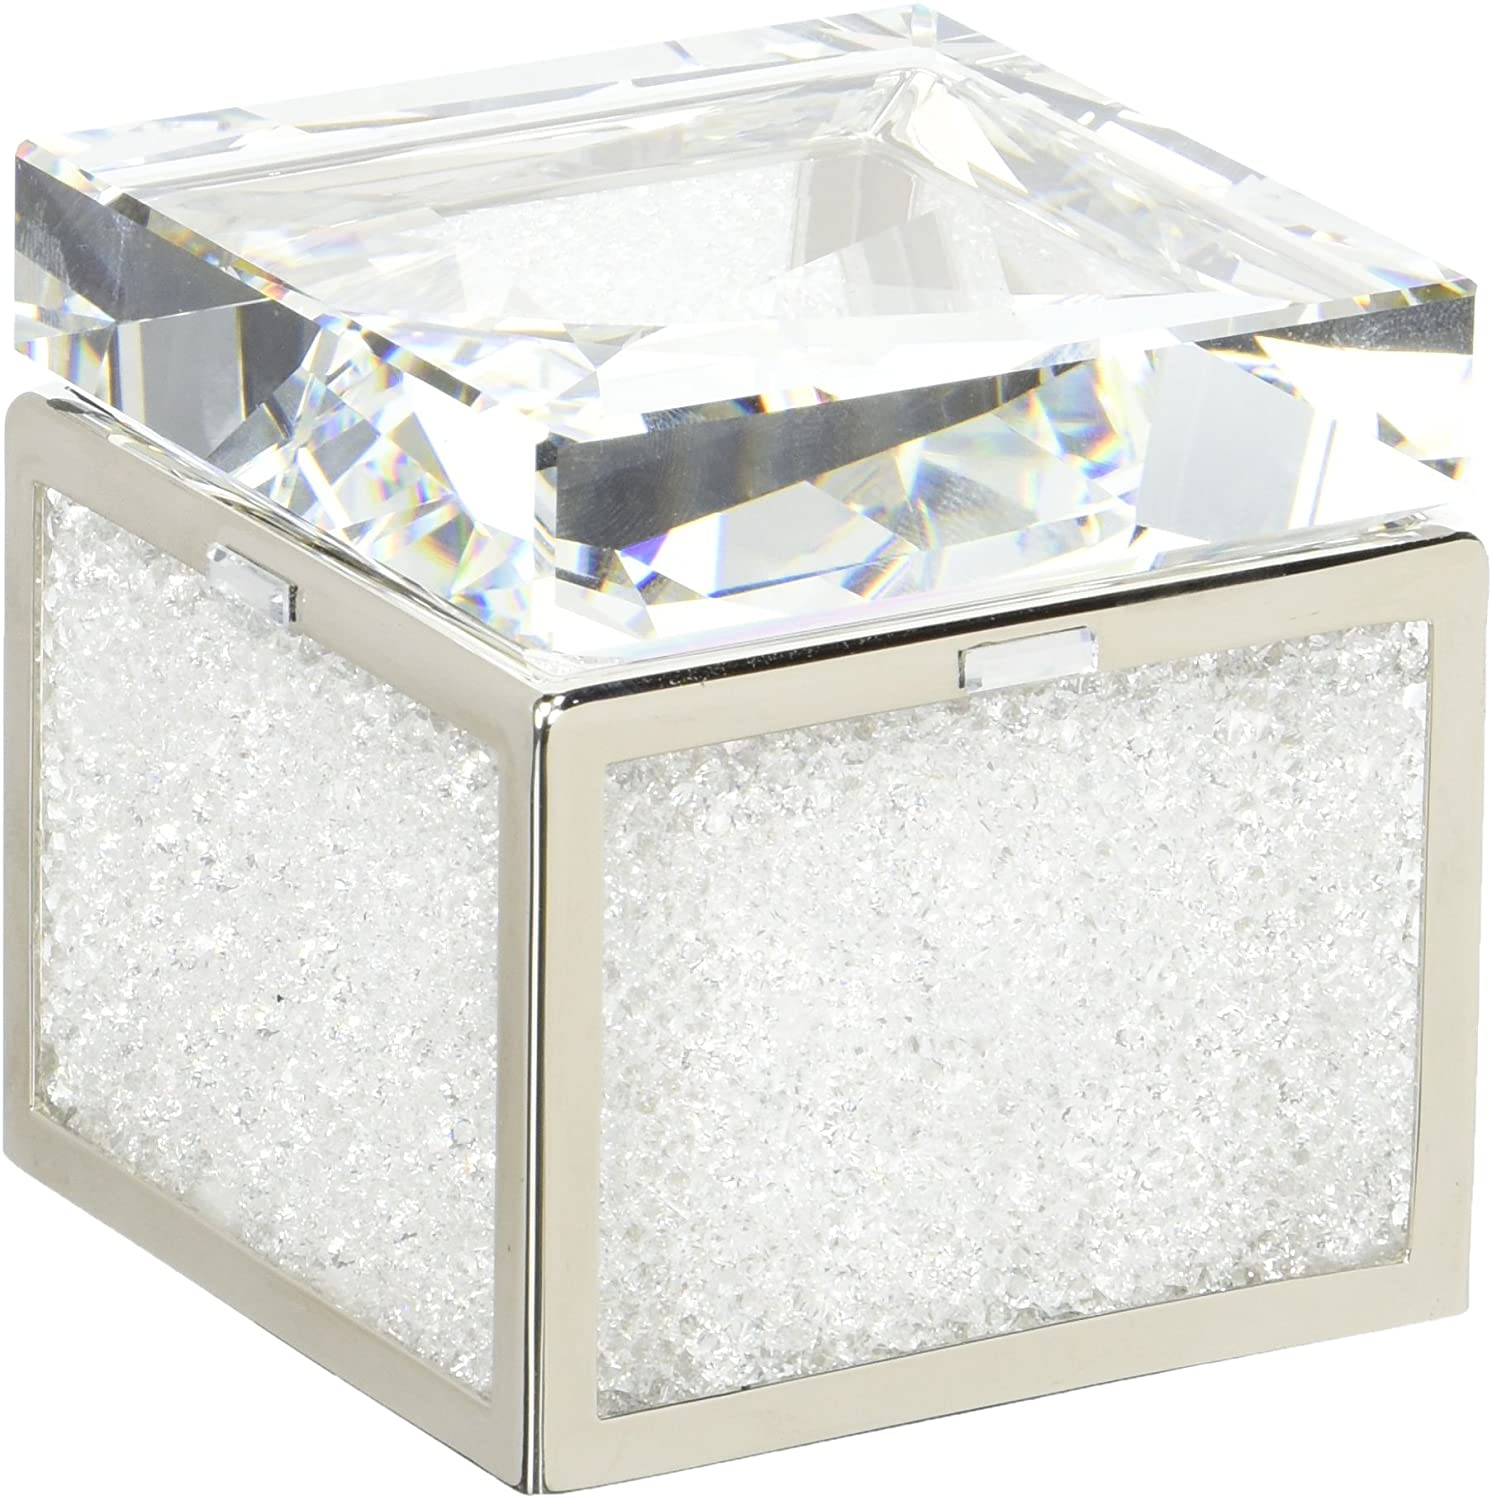 Crystalline Treasure Box 5136899